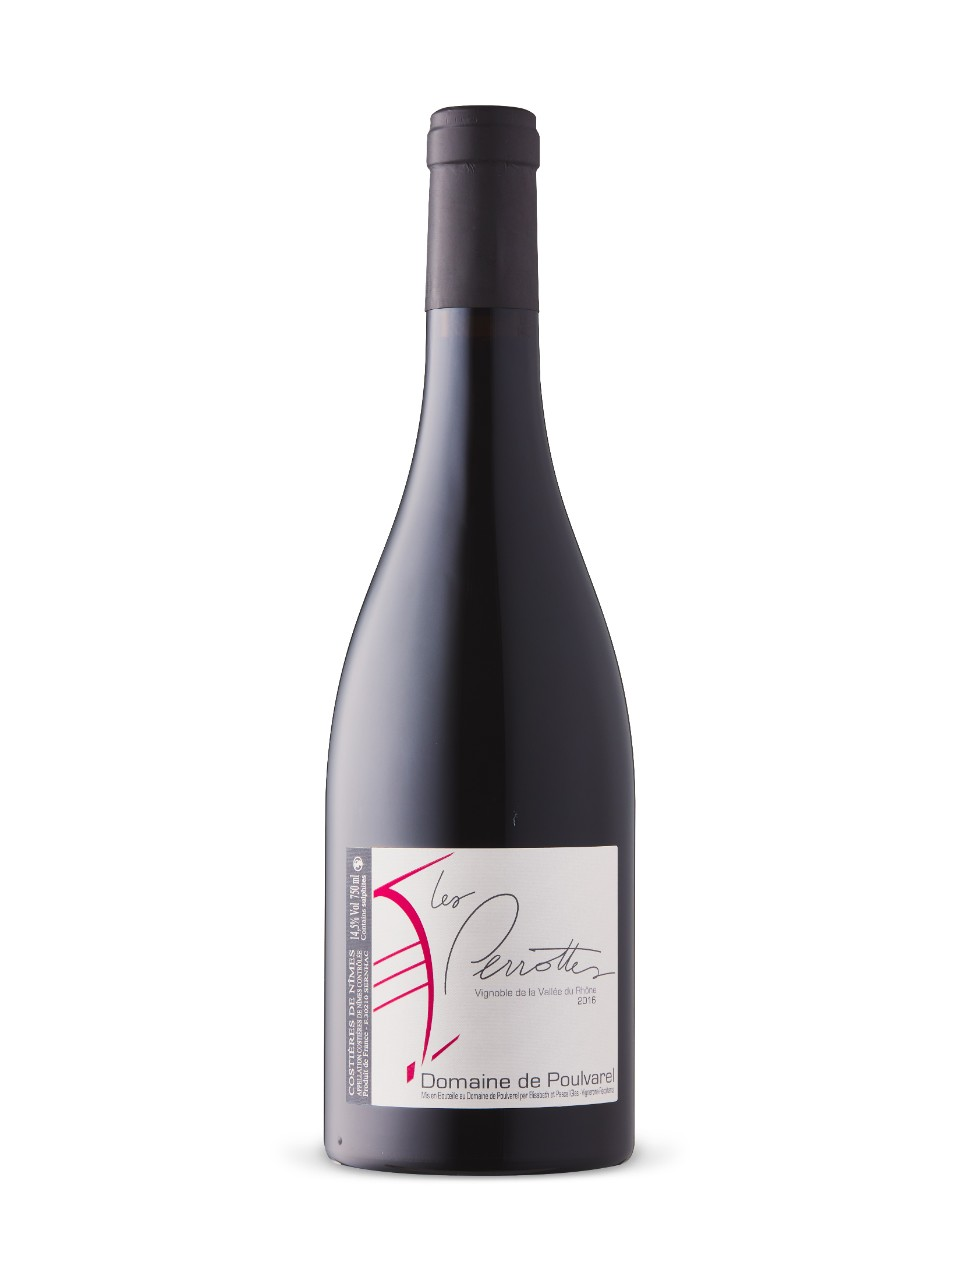 Les Perrottes Rouge 2016 from LCBO